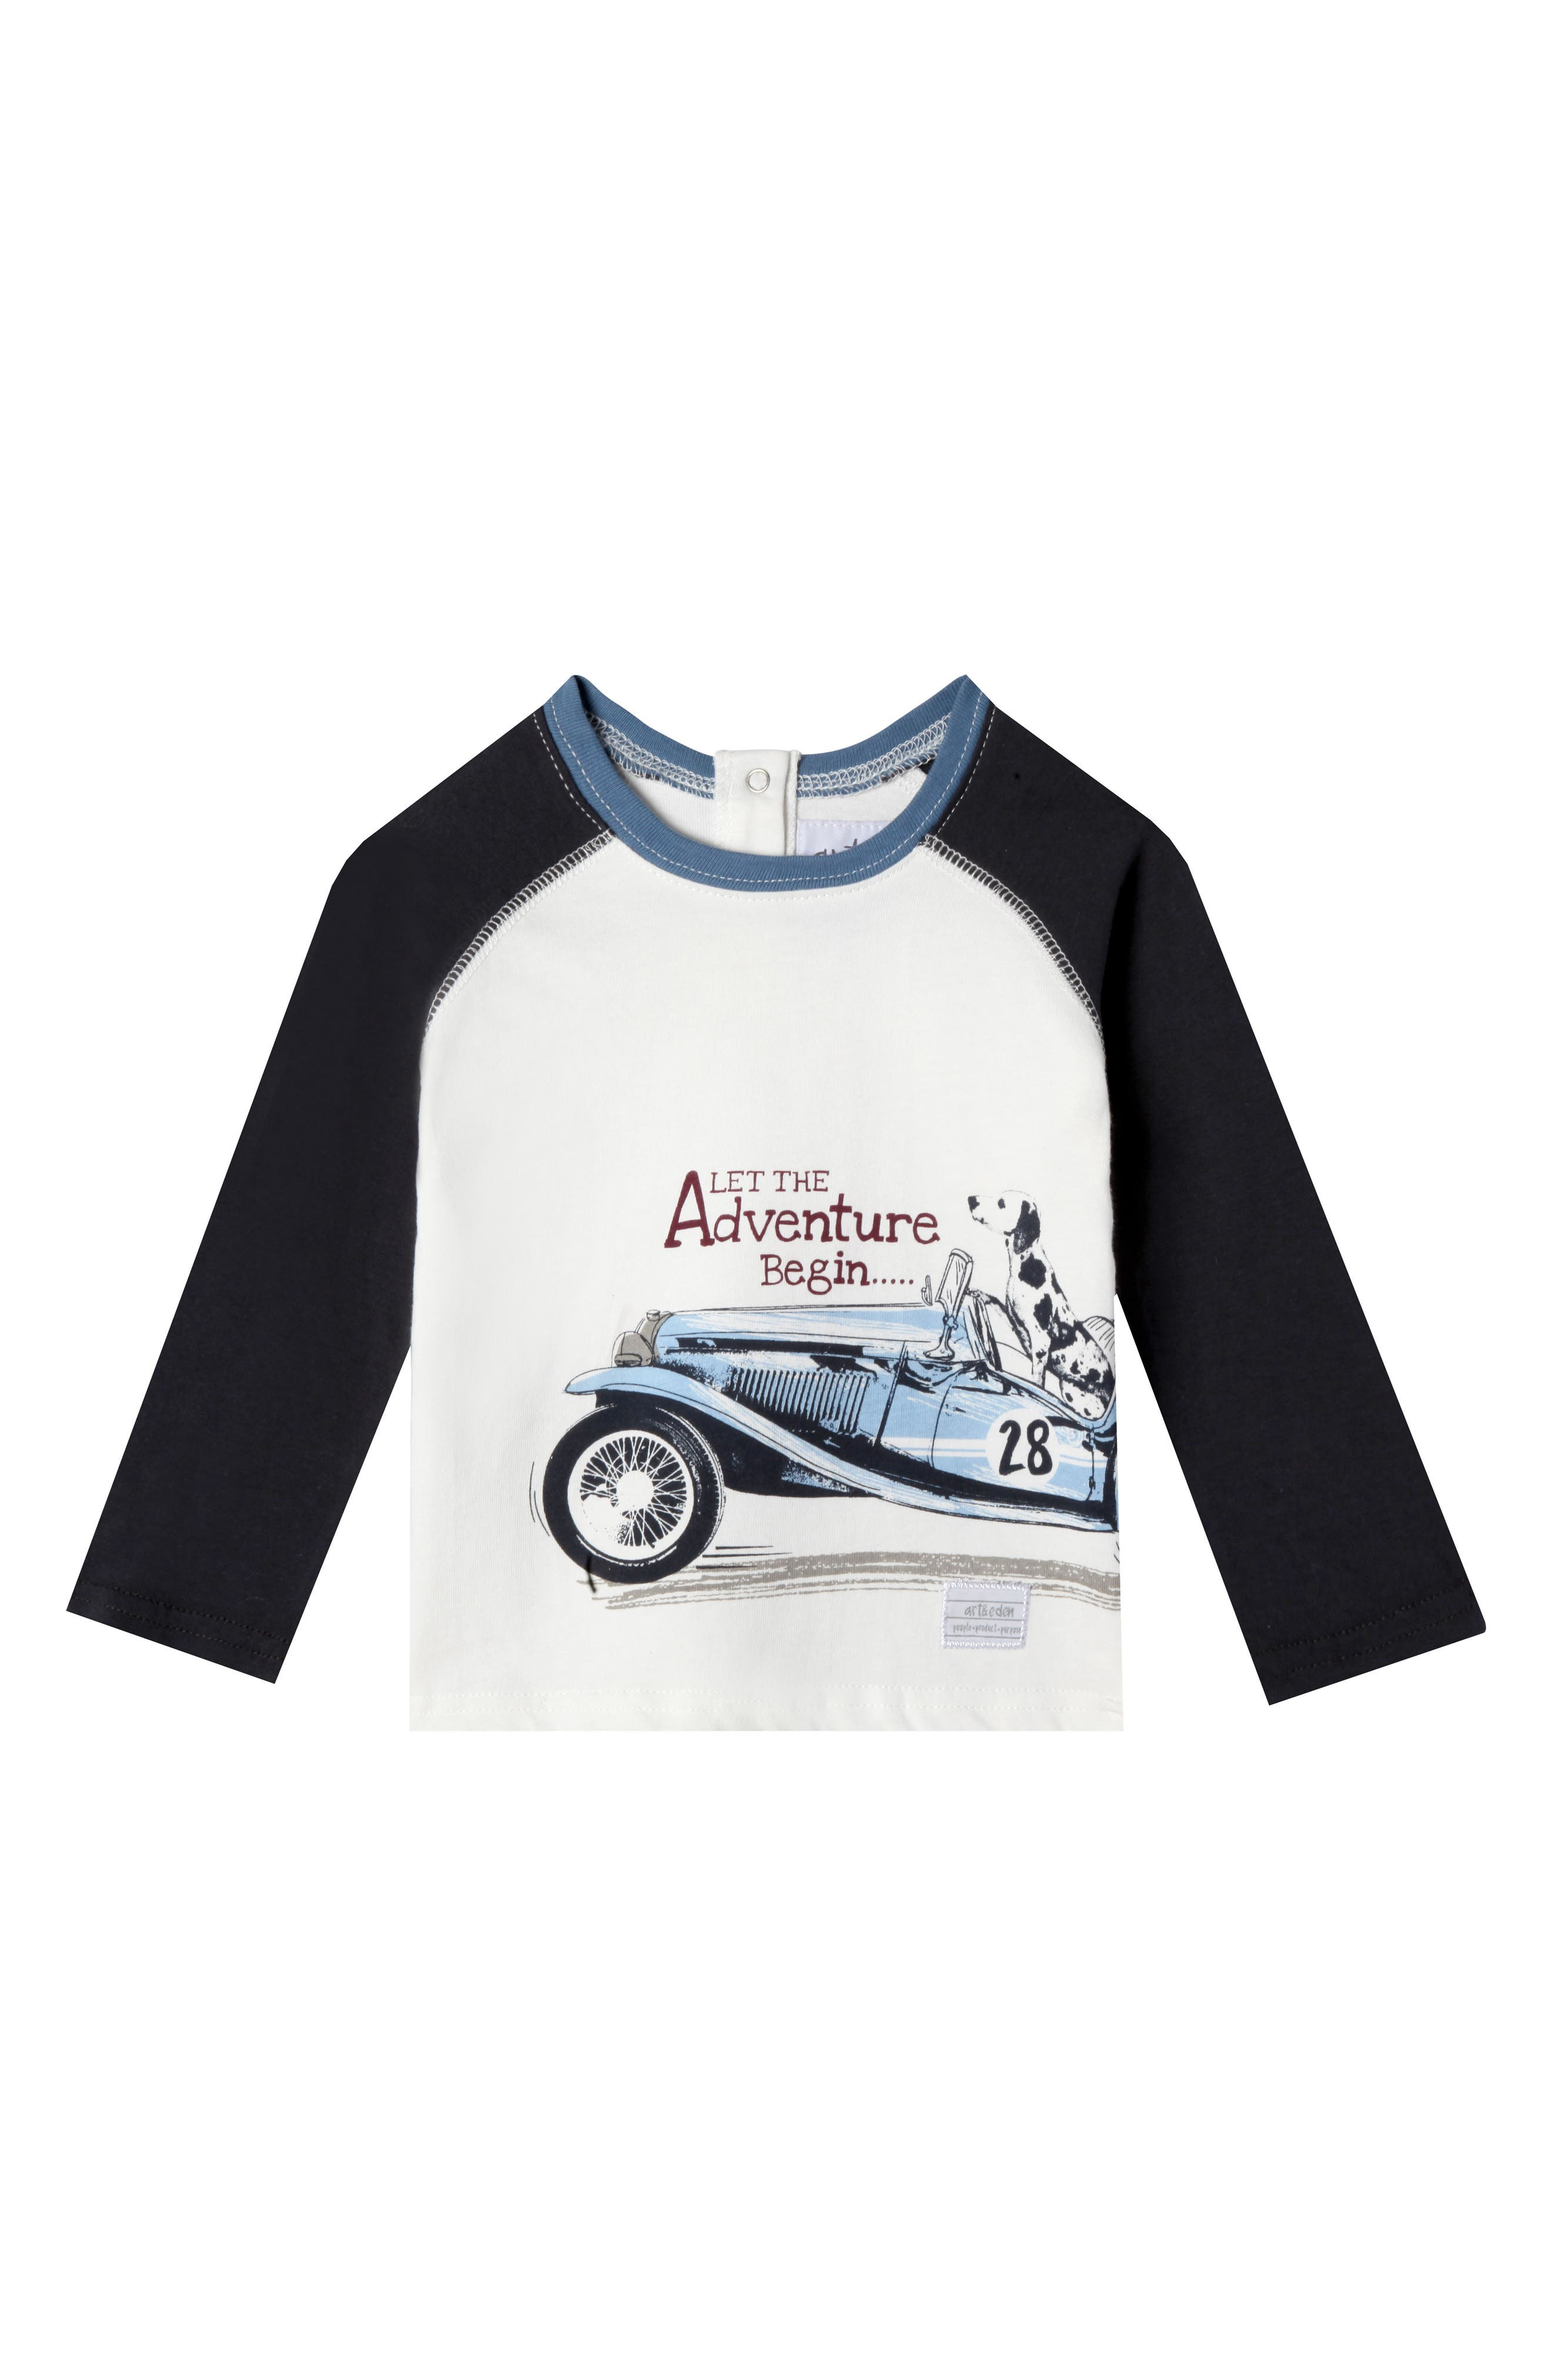 Alternate Image 1 Selected - Art & Eden Adventure Organic Cotton T-Shirt (Baby Boys)